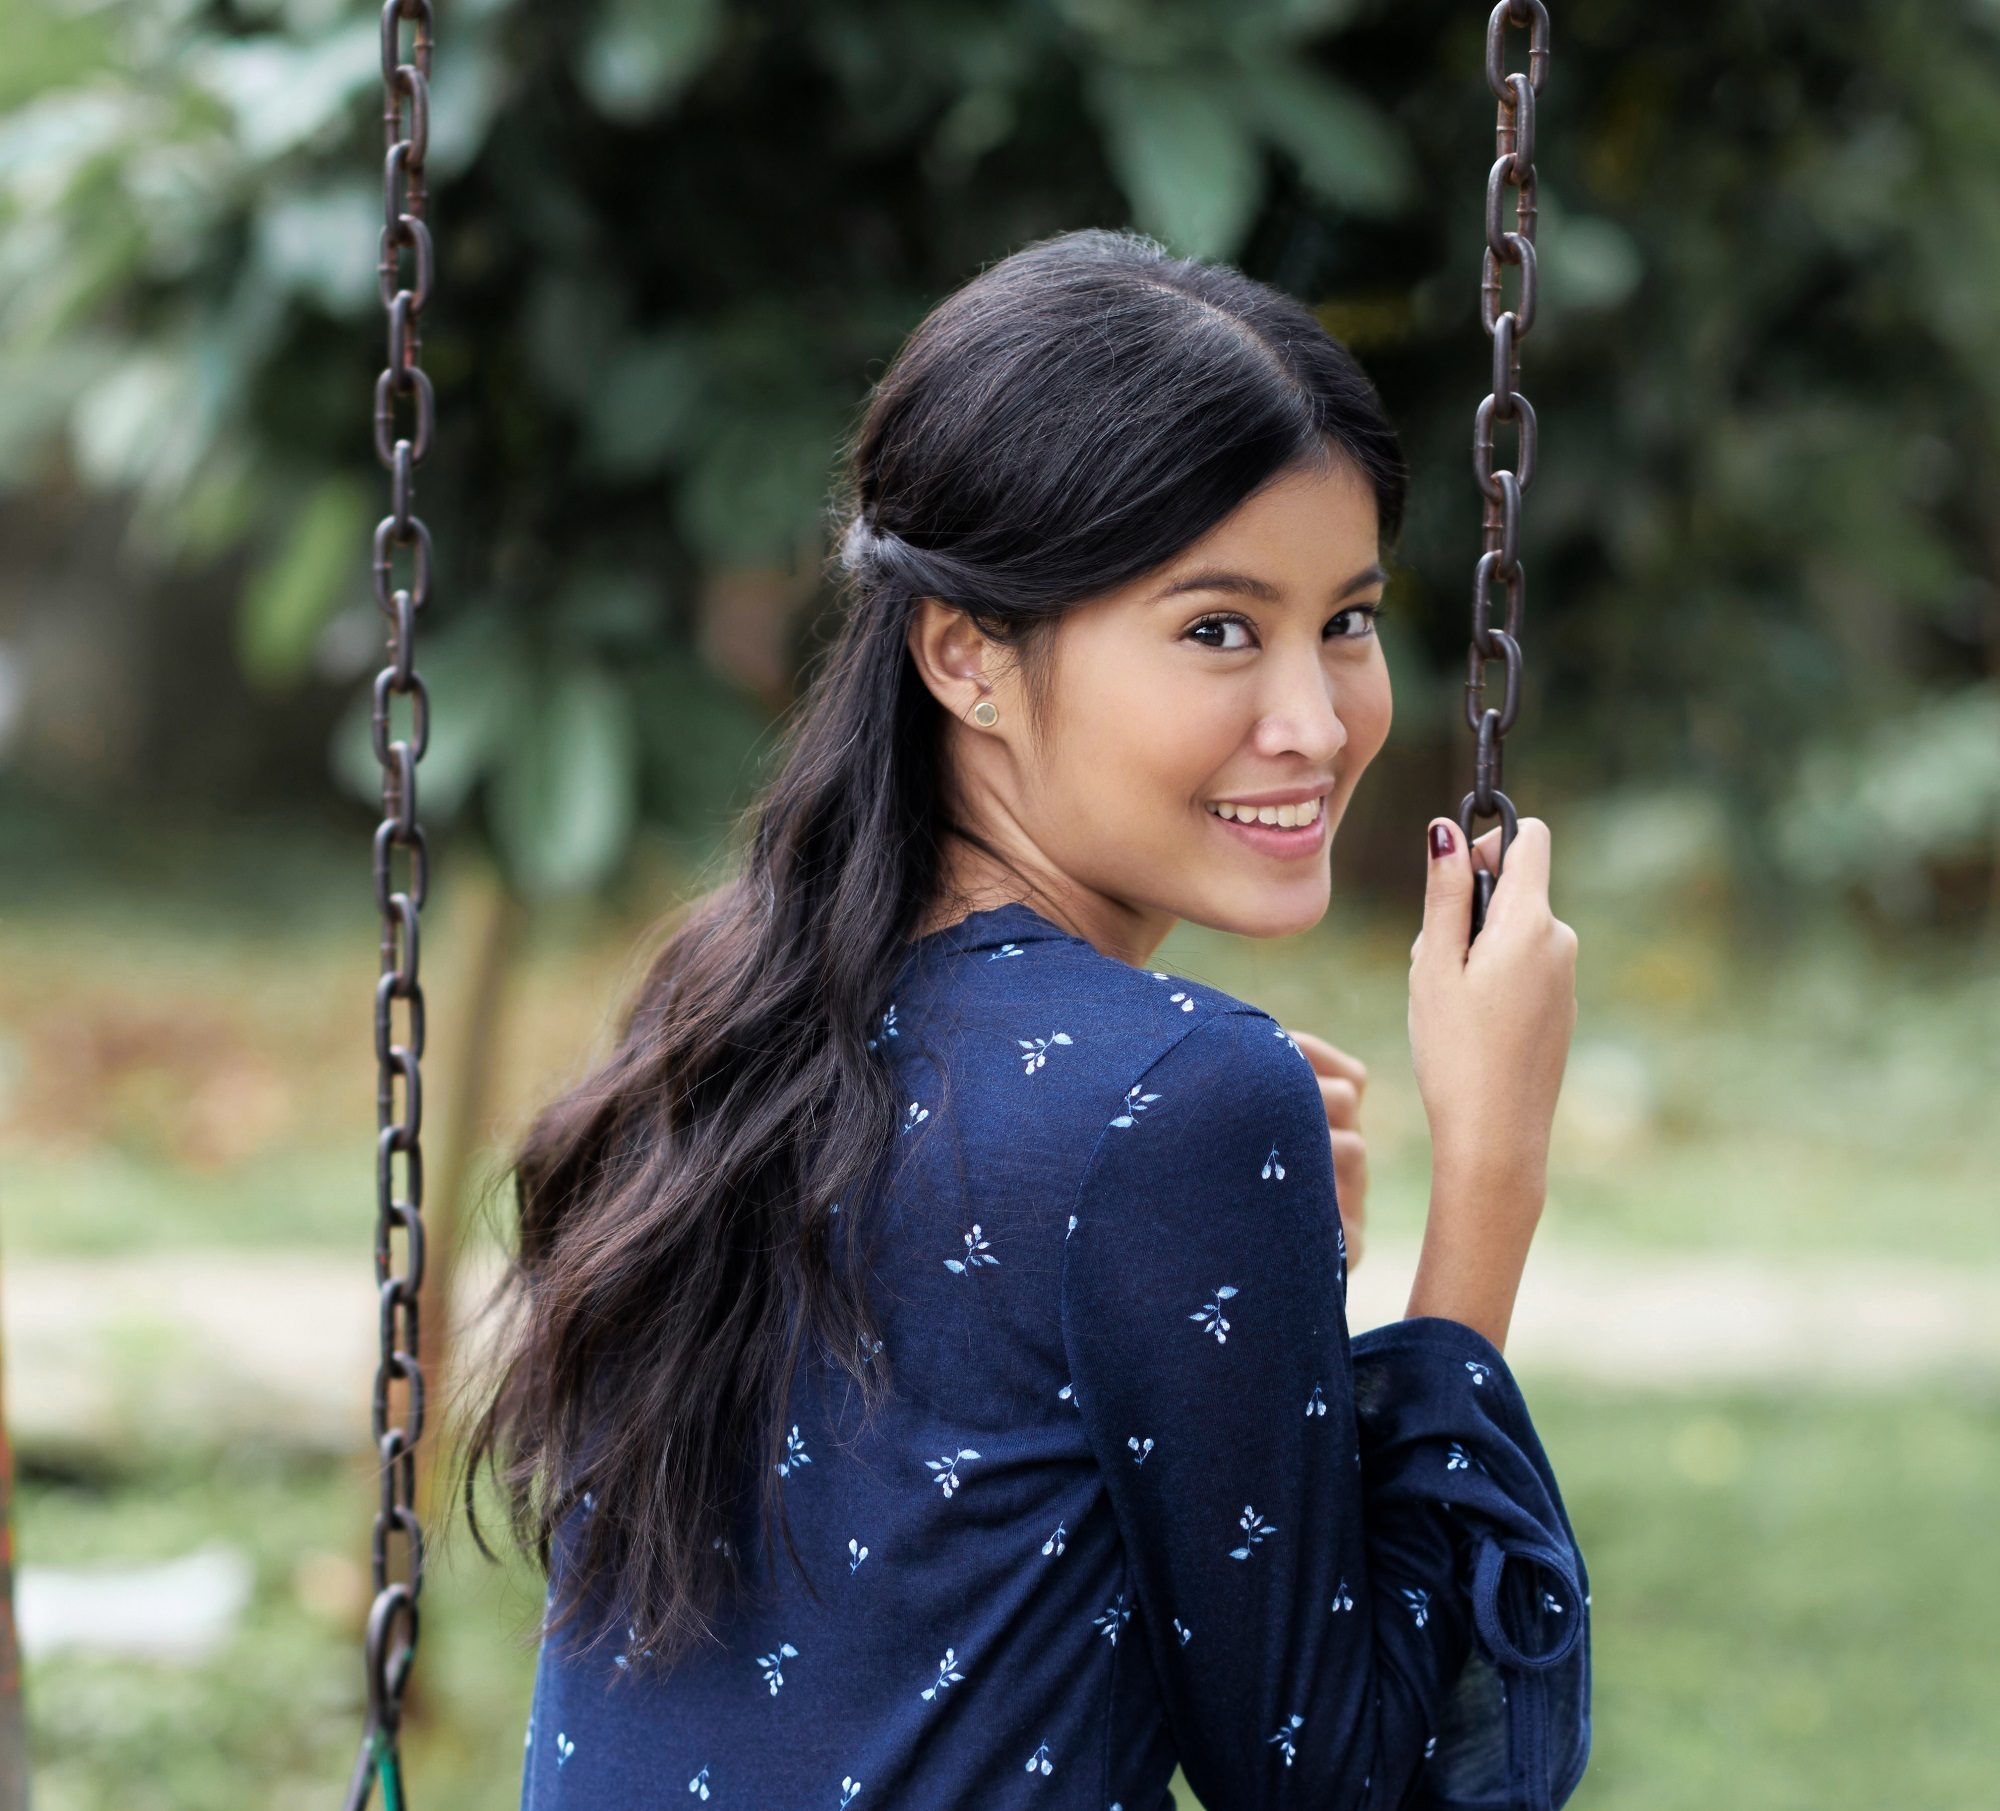 Long black hair: Asian woman wearing a dark blue dress with long black hair sitting on a swing in a park